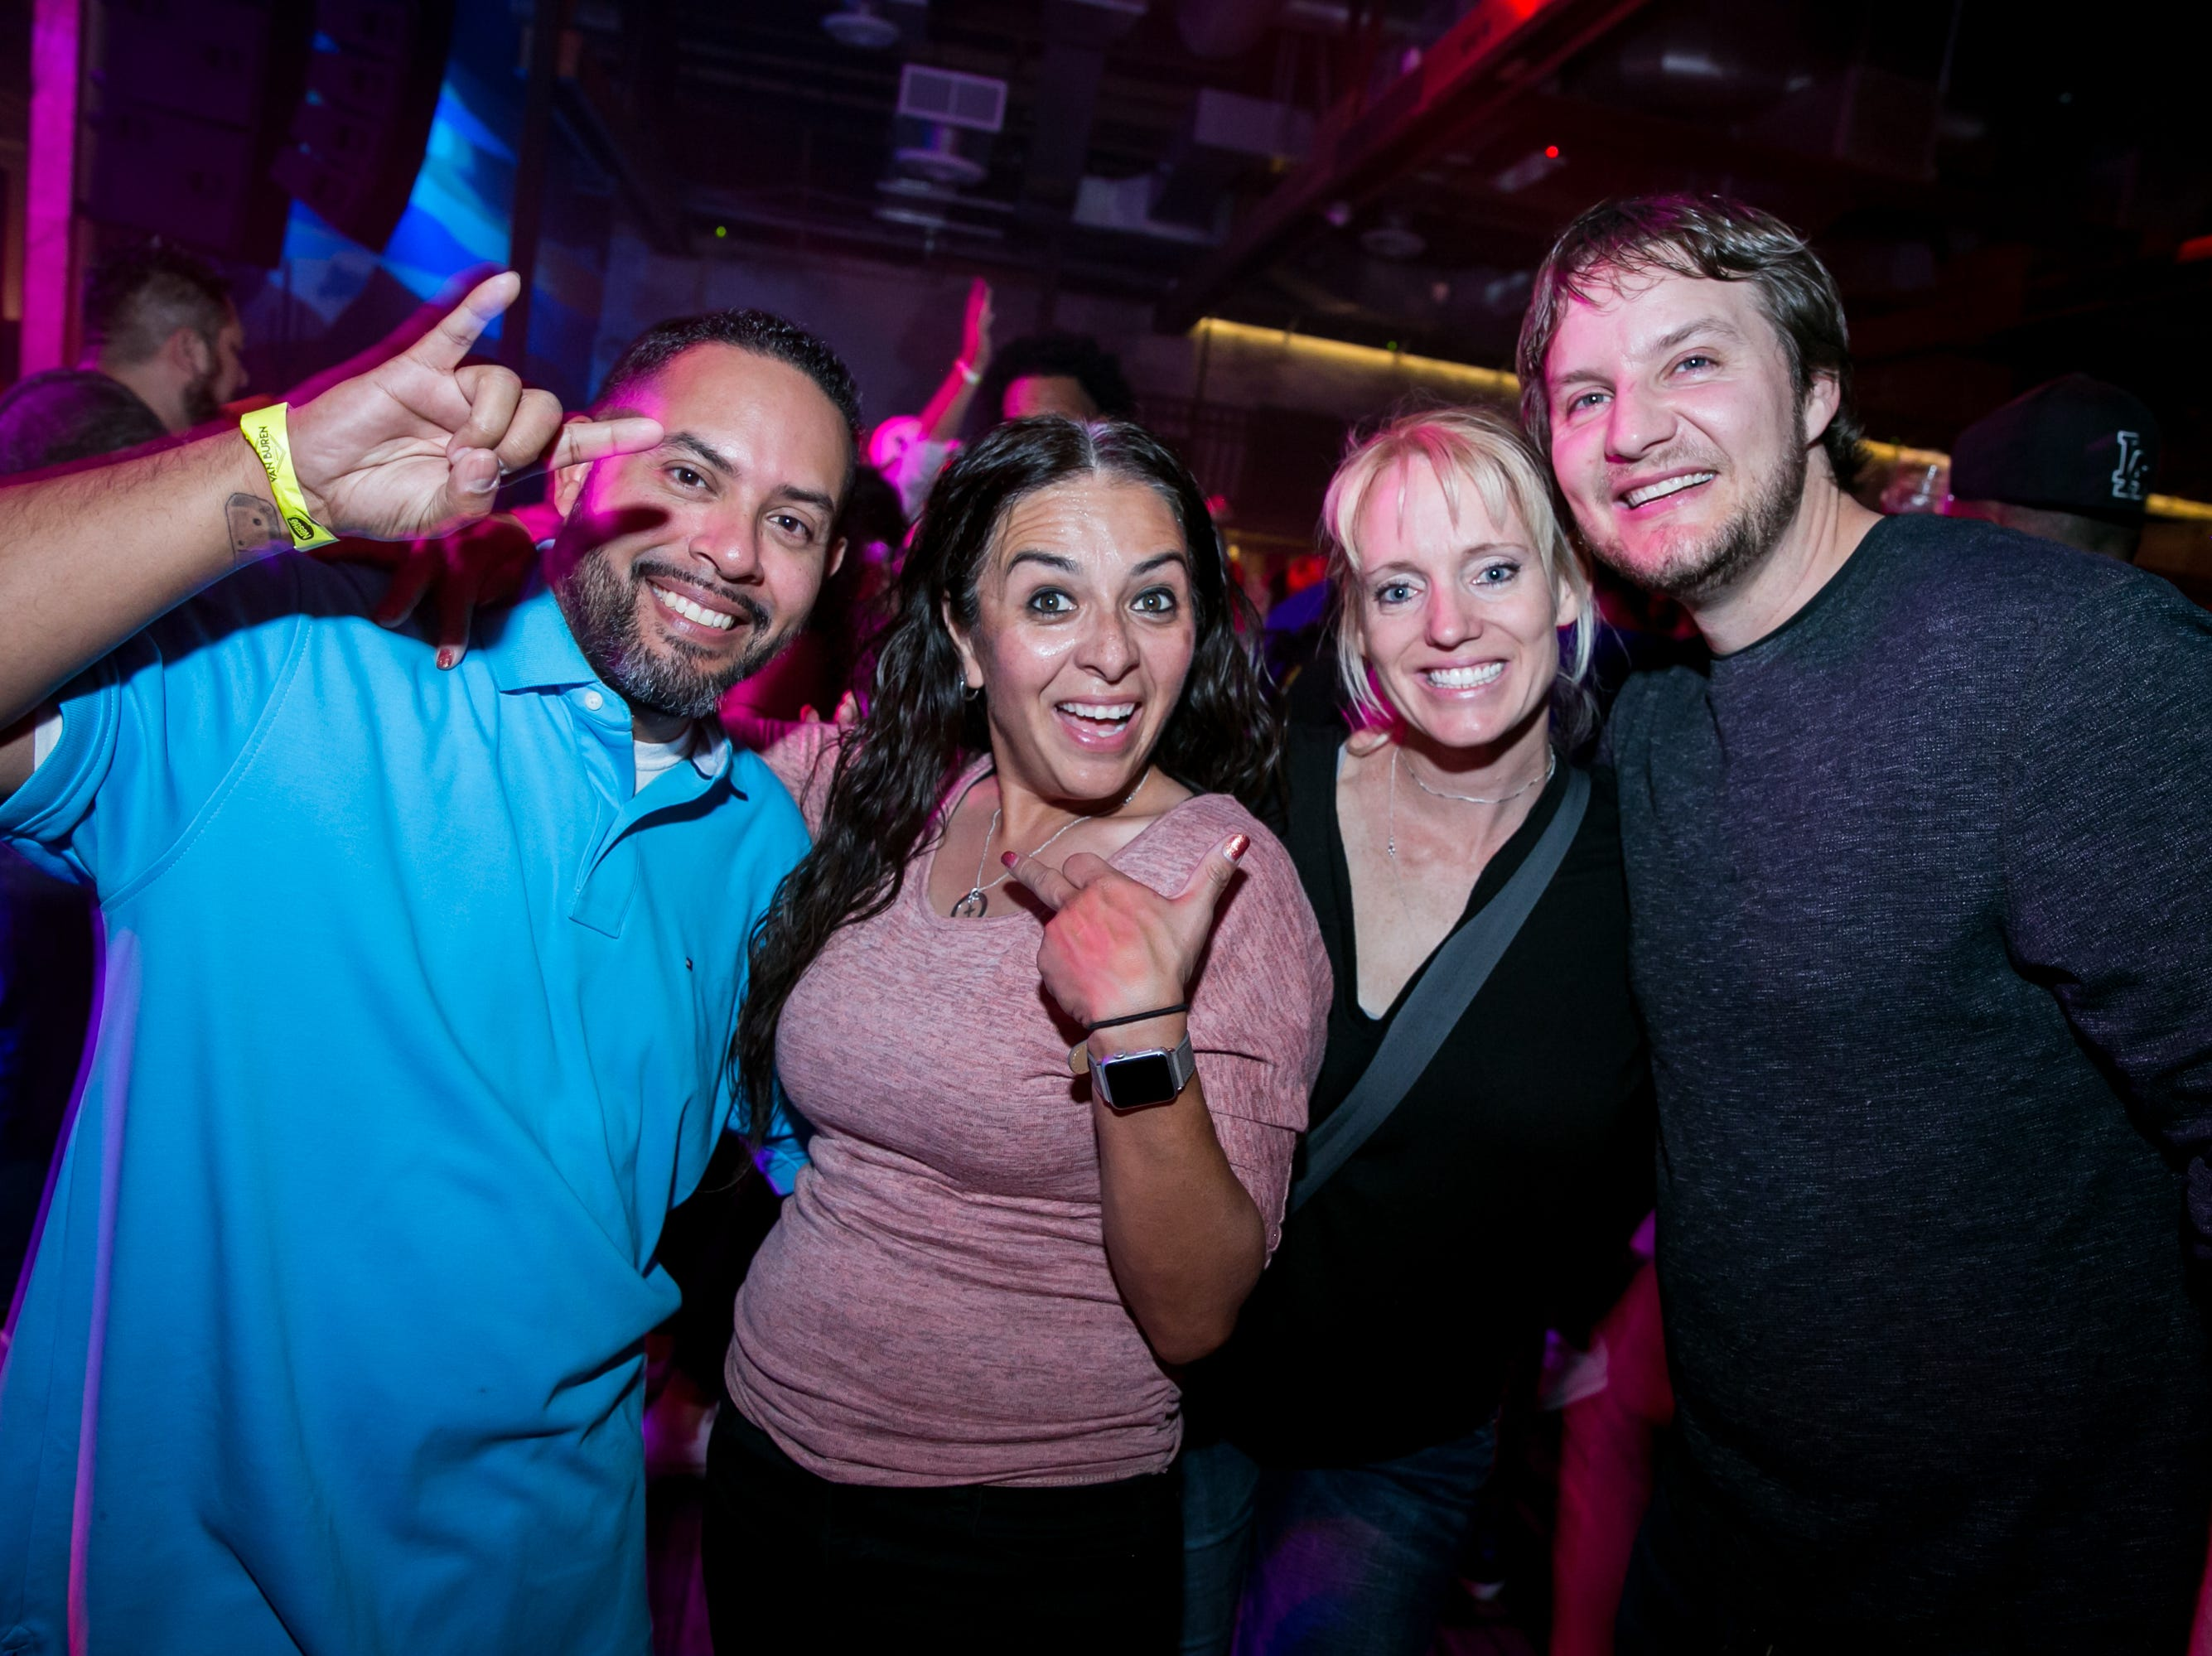 This group had a splendid time during Old School - 90's Hip Hop Dance Party at The Van Buren on Friday, November 30, 2018.